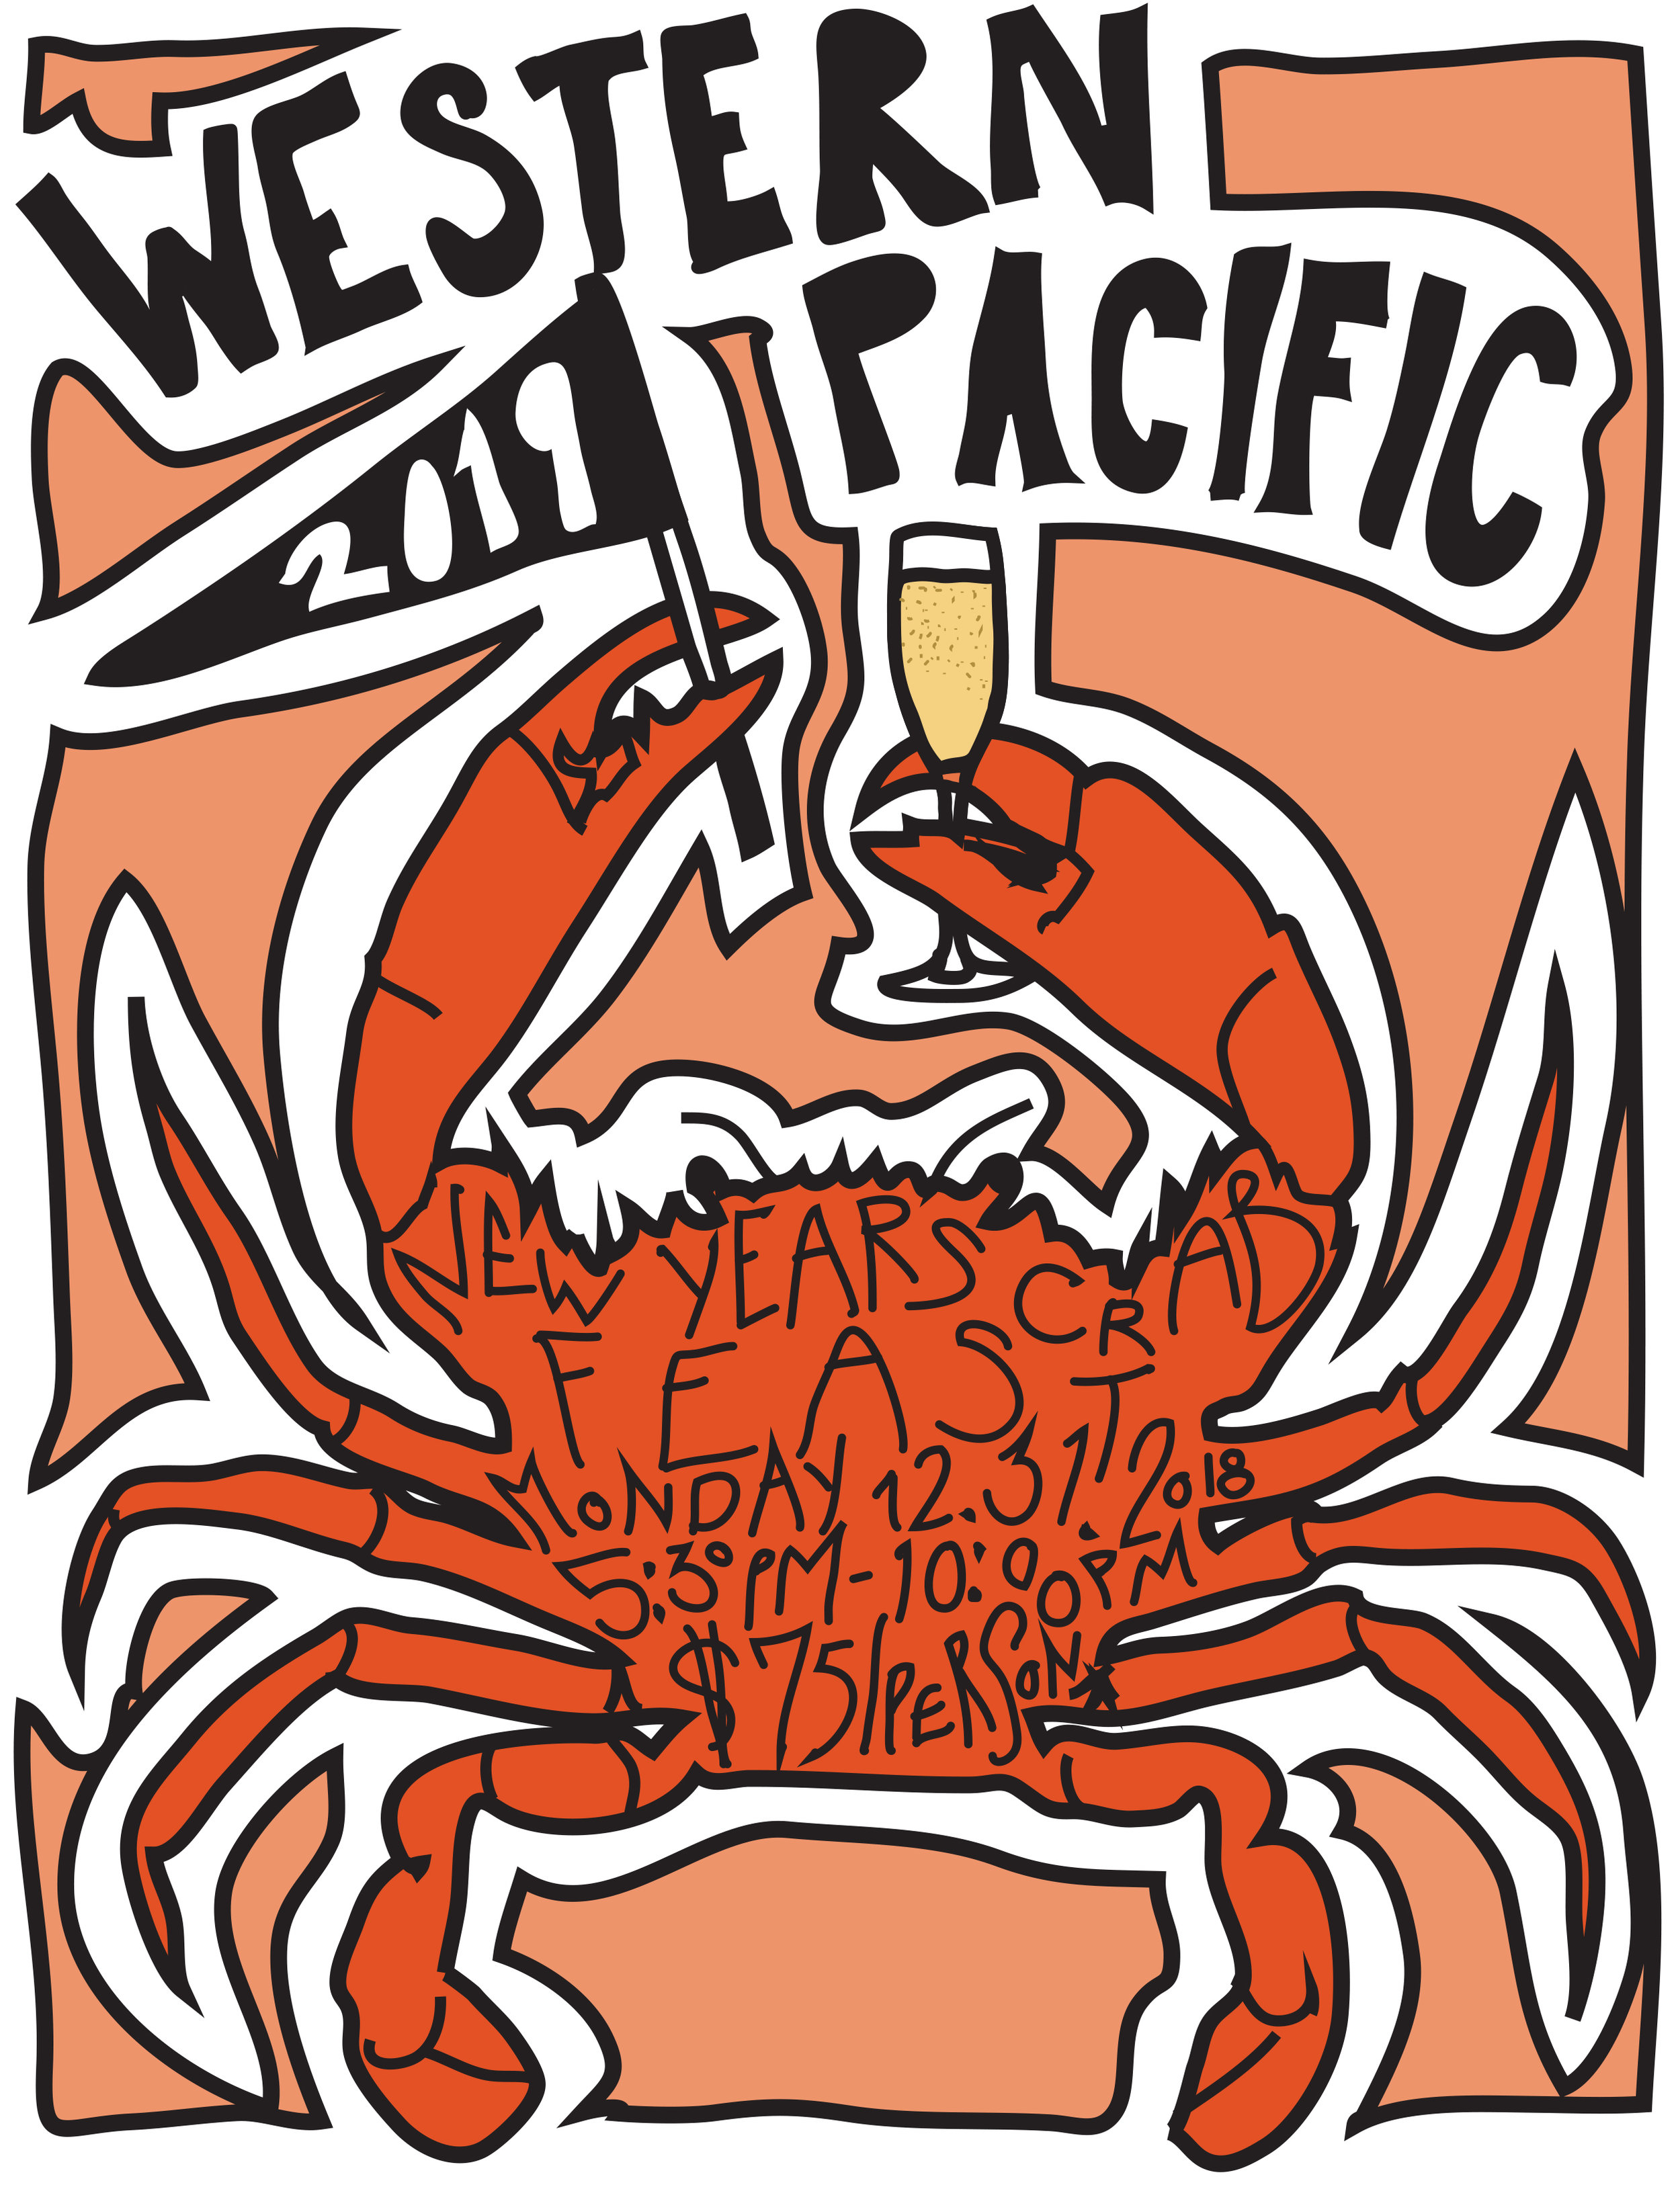 Western Pacific New Years Eve Crab Fest 2018.jpg